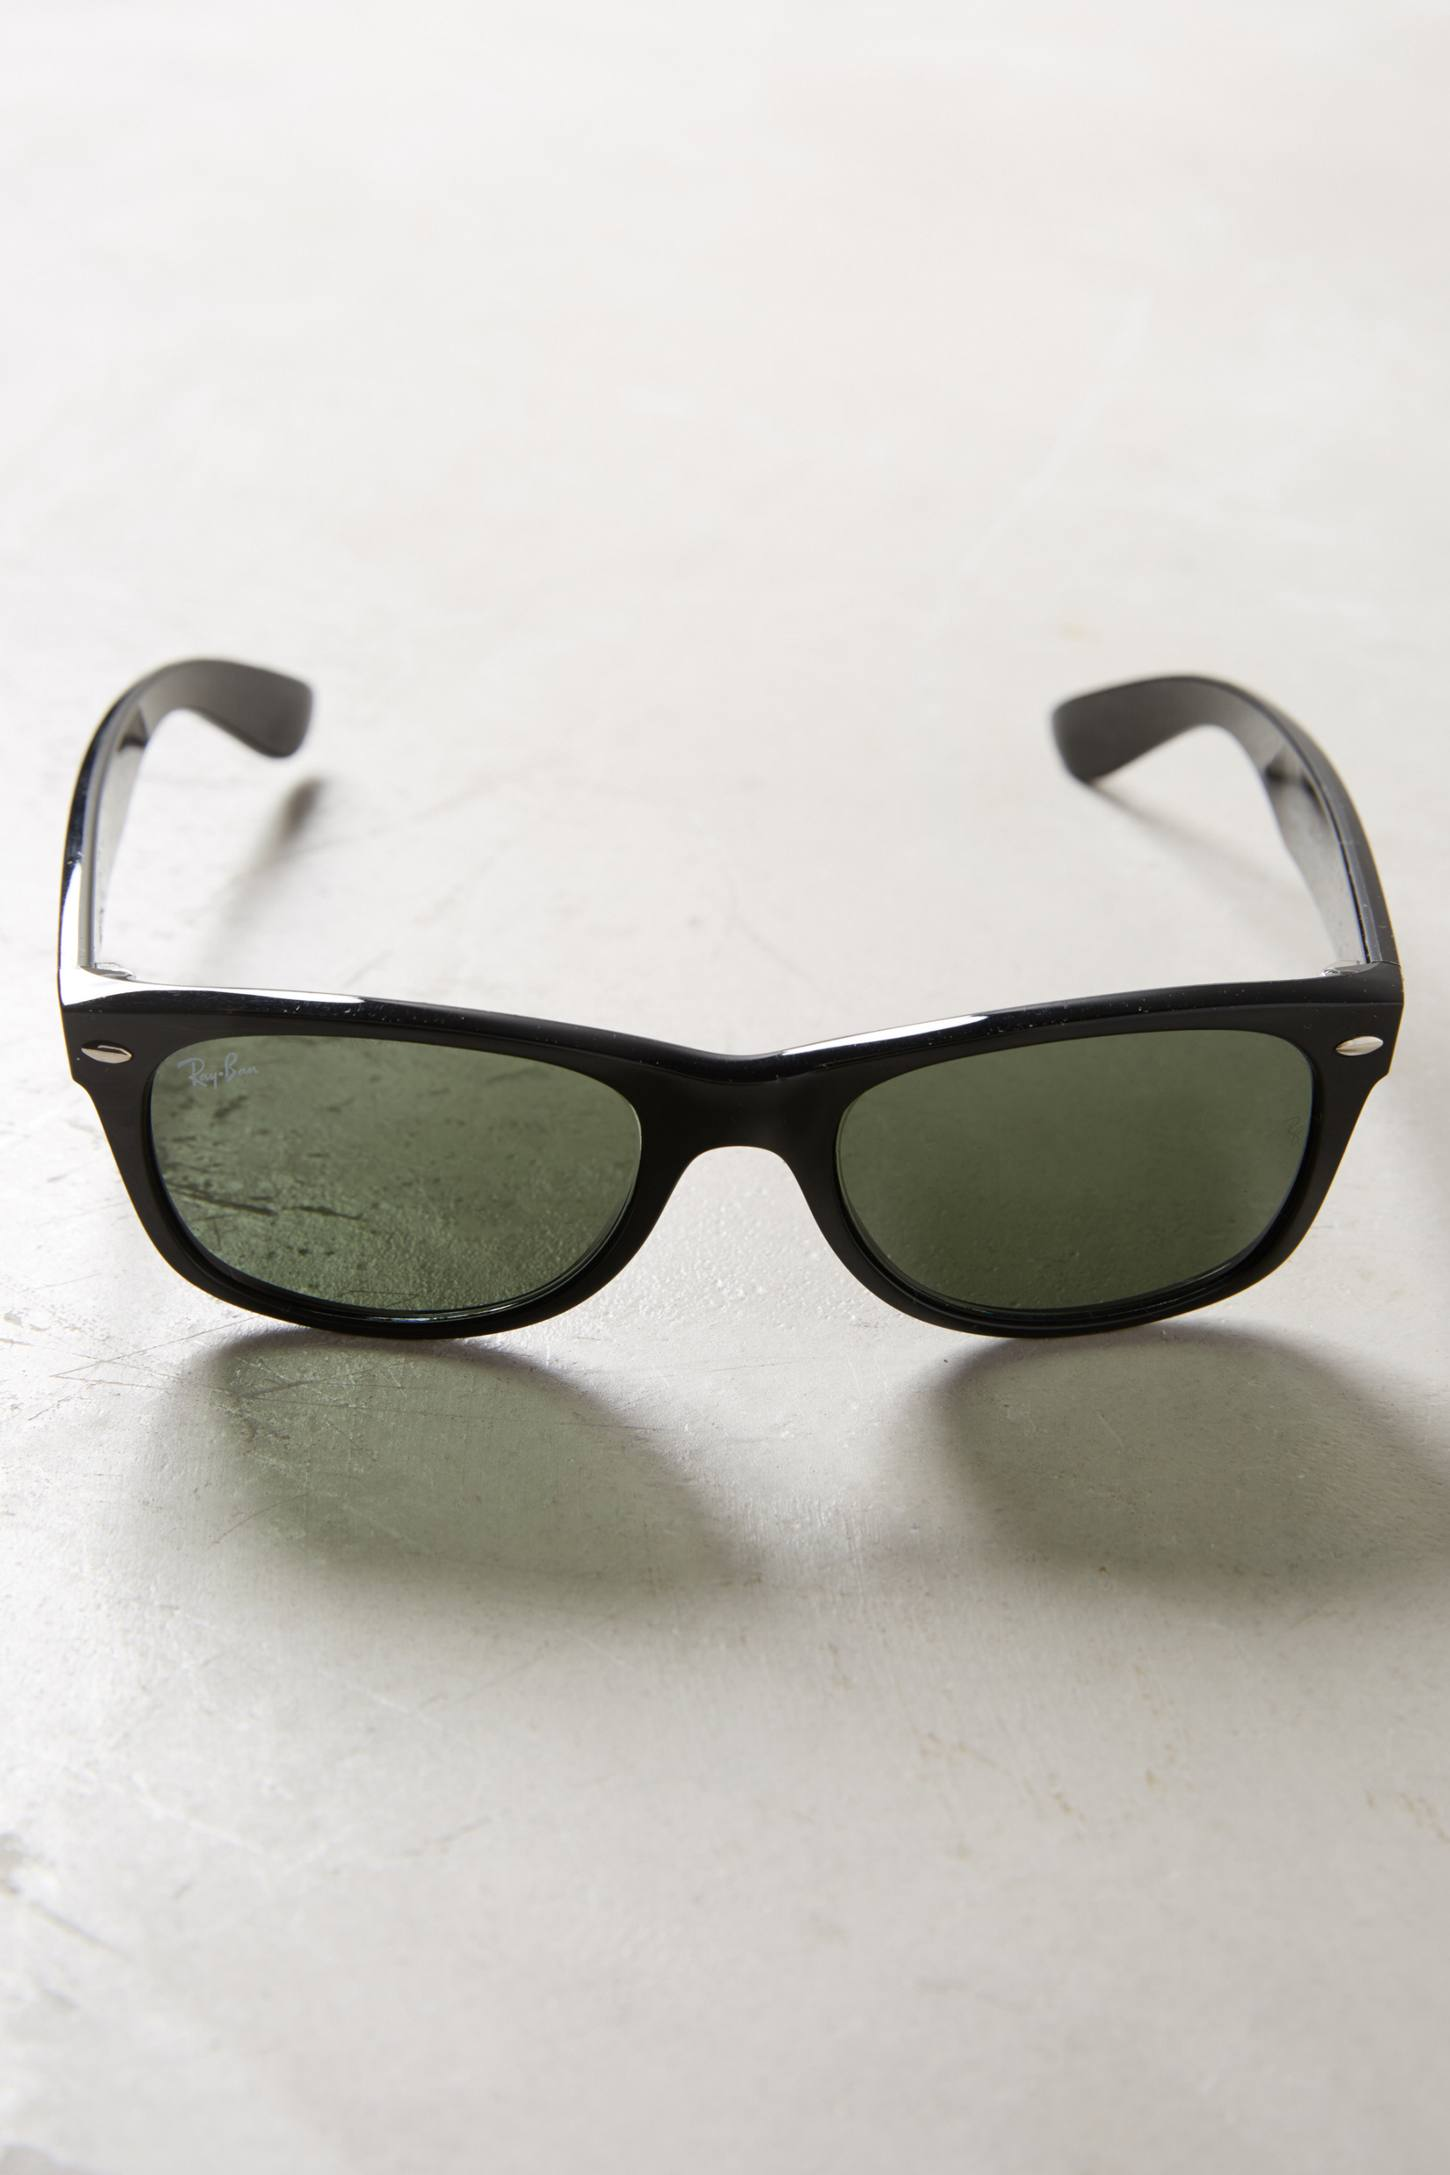 Slide View: 1: Ray-Ban New Wayfarer Sunglasses